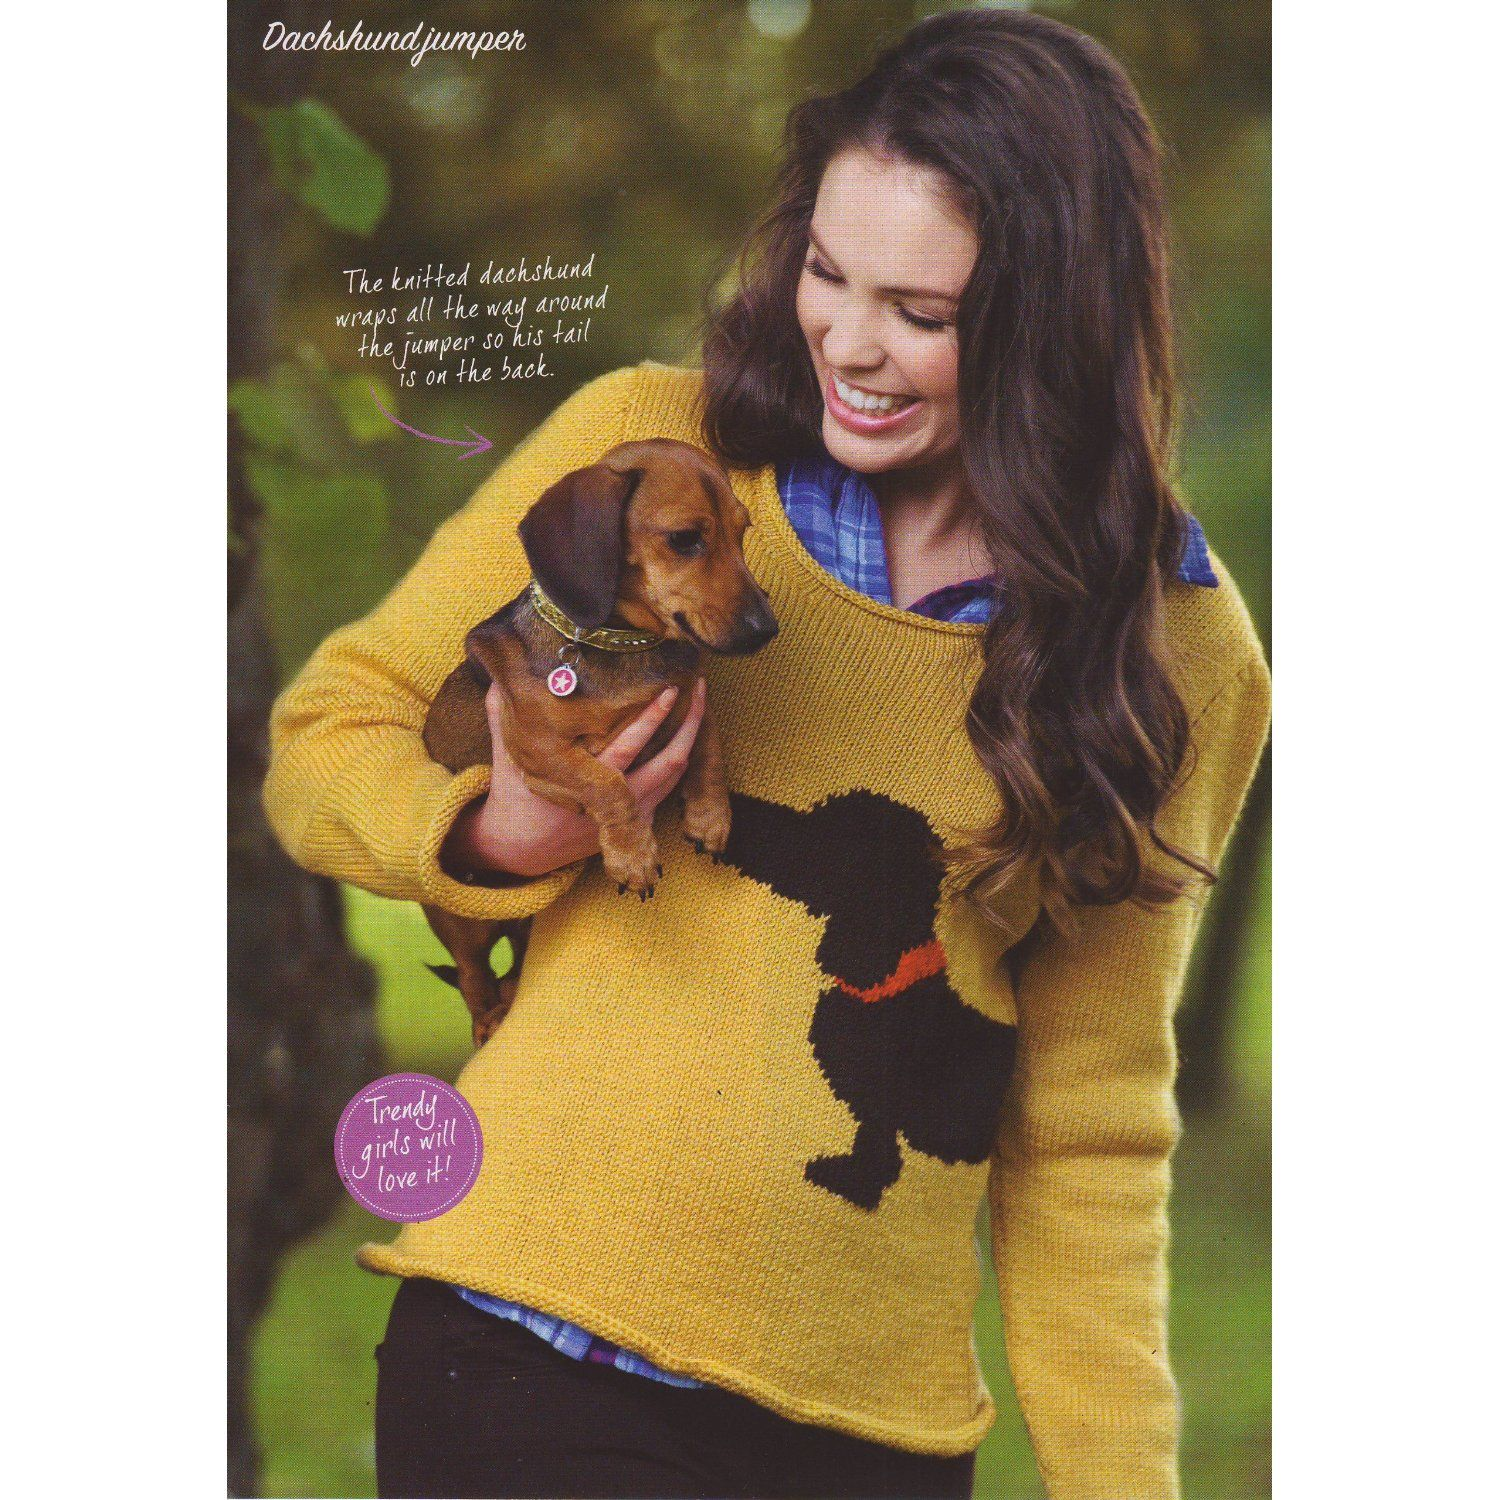 Womens Dachshund Dog Motif Jumper Knitting Pattern: 8 sizes To fit ...